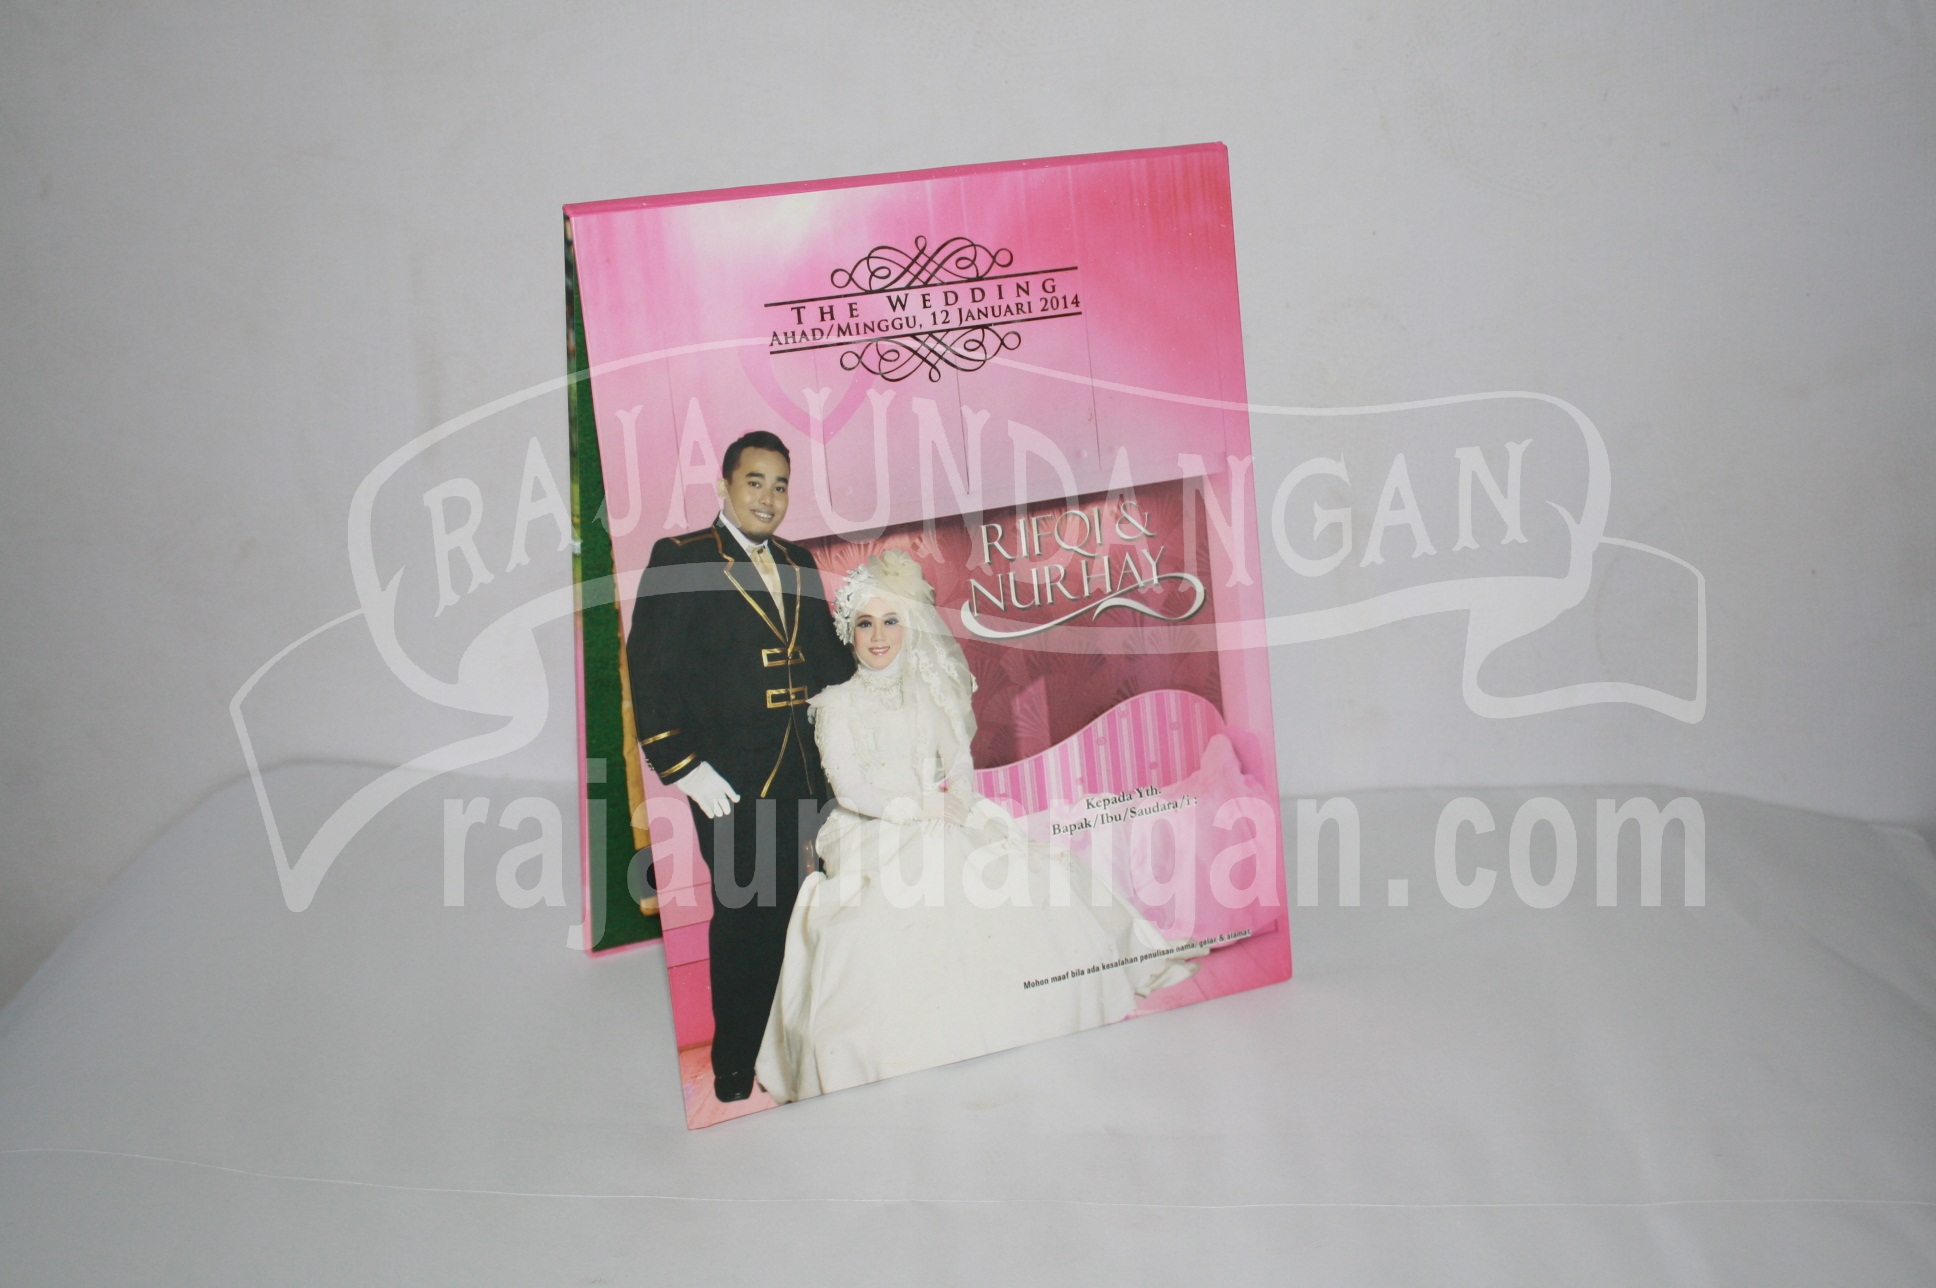 Undangan Pernikahan Hardcover Pop Up Rifqi dan Nurhay EDC 40 - Desain Wedding Invitations Unik dan Simple